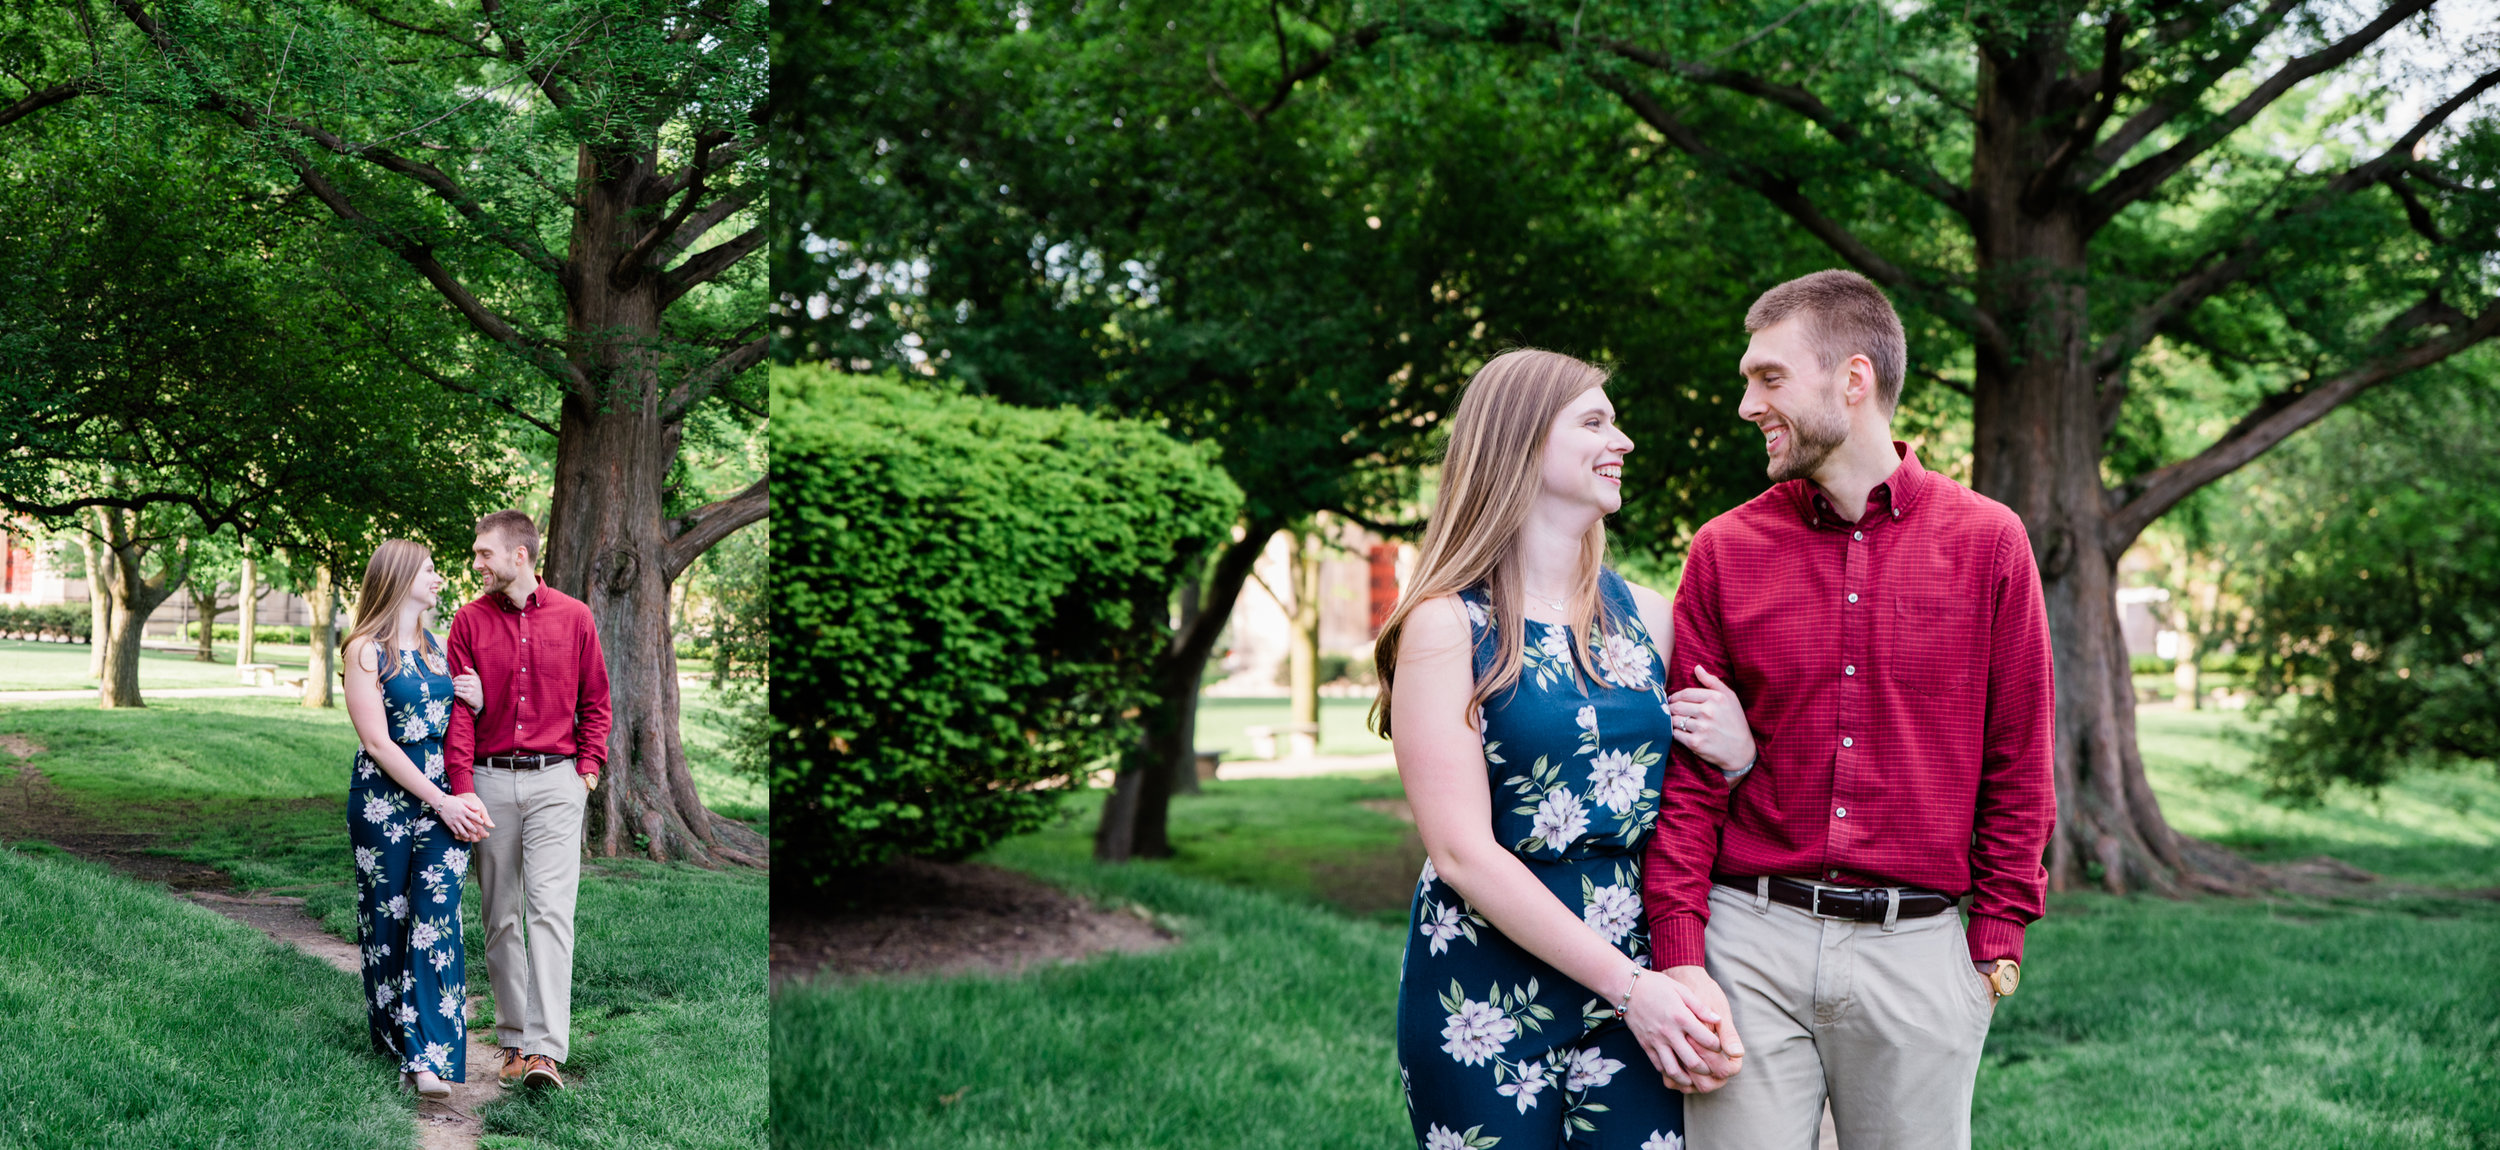 Cathedral of Learning Engagement Session, Pittsburgh Wedding Photographer.jpg